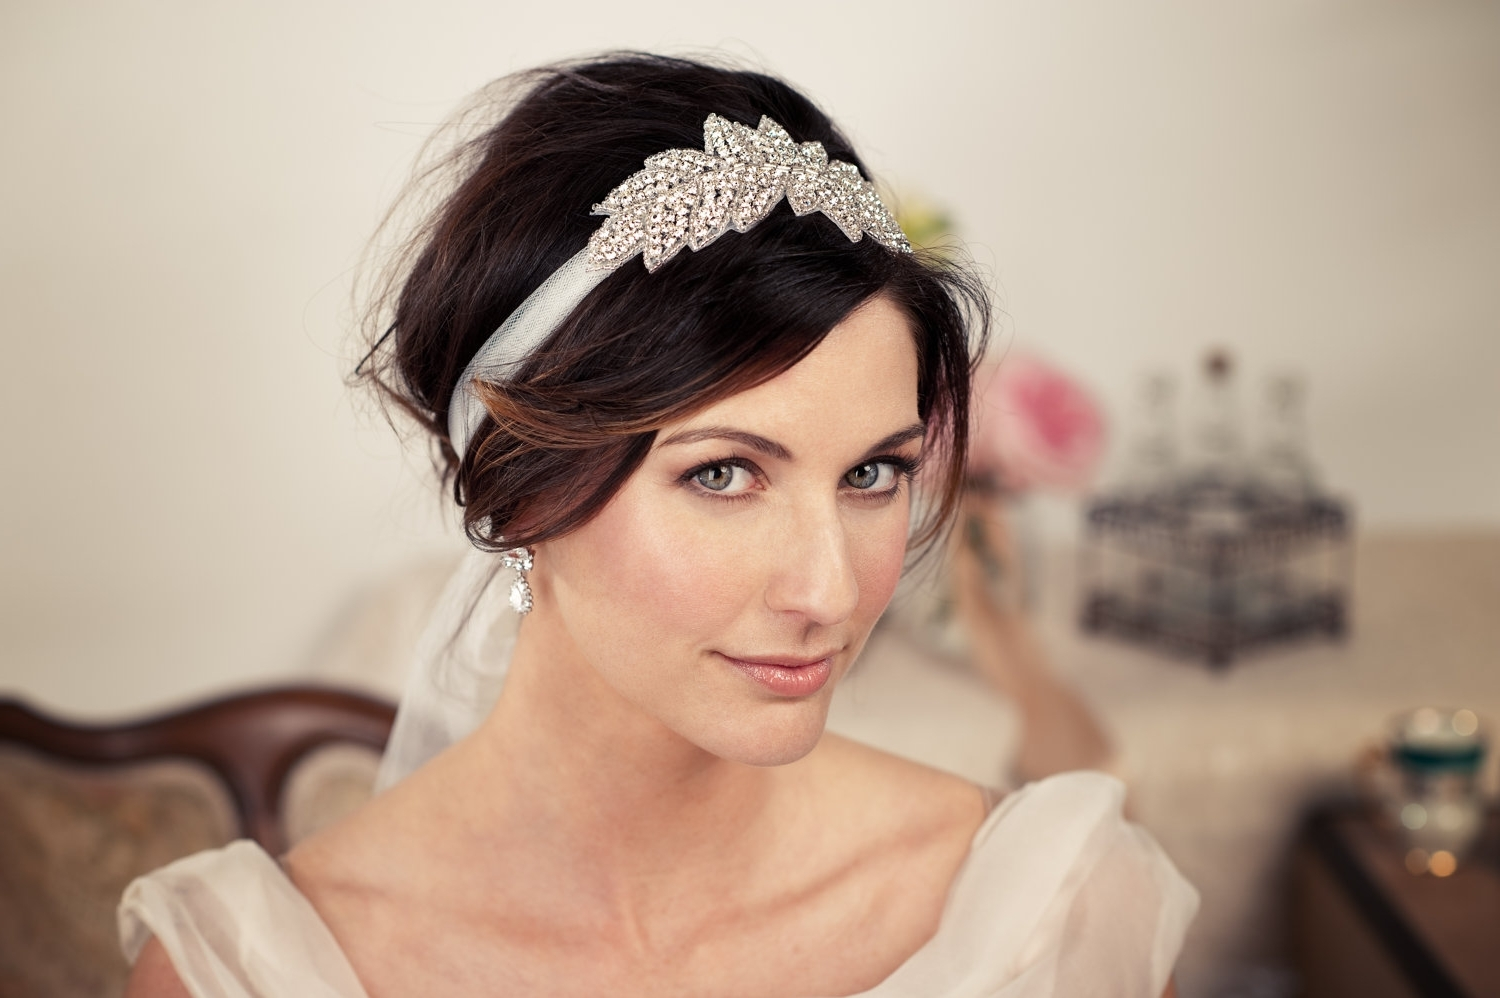 Short Hair With Headband Hairstyles – Hairstyle For Women & Man Pertaining To Trendy Wedding Hairstyles For Long Hair With Headband (View 9 of 15)